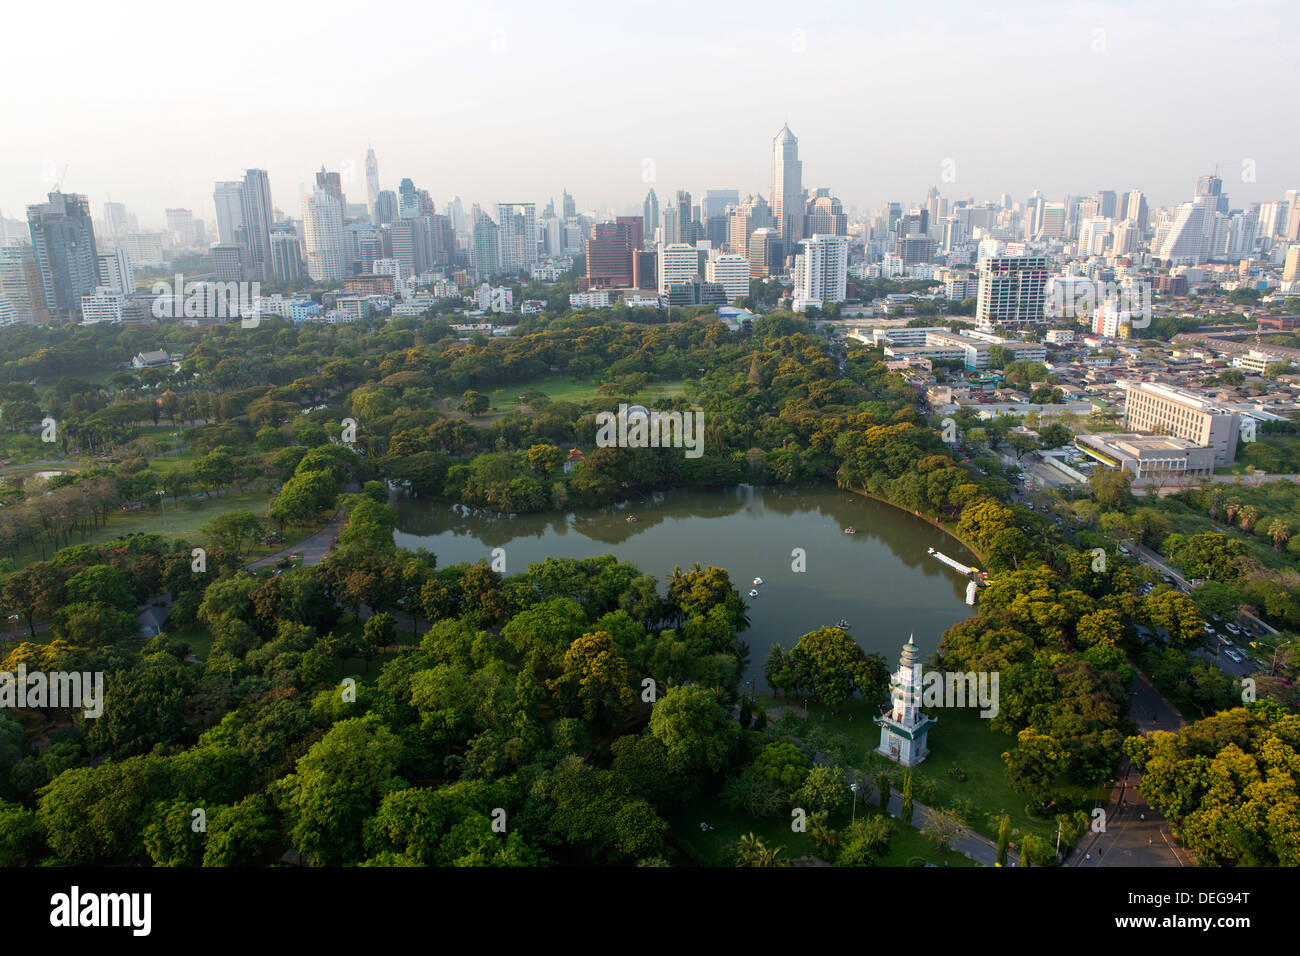 City skyline with Lumphini Park, the Green Lung of Bangkok, in the foreground, Sathorn Road, Bangkok, Thailand - Stock Image